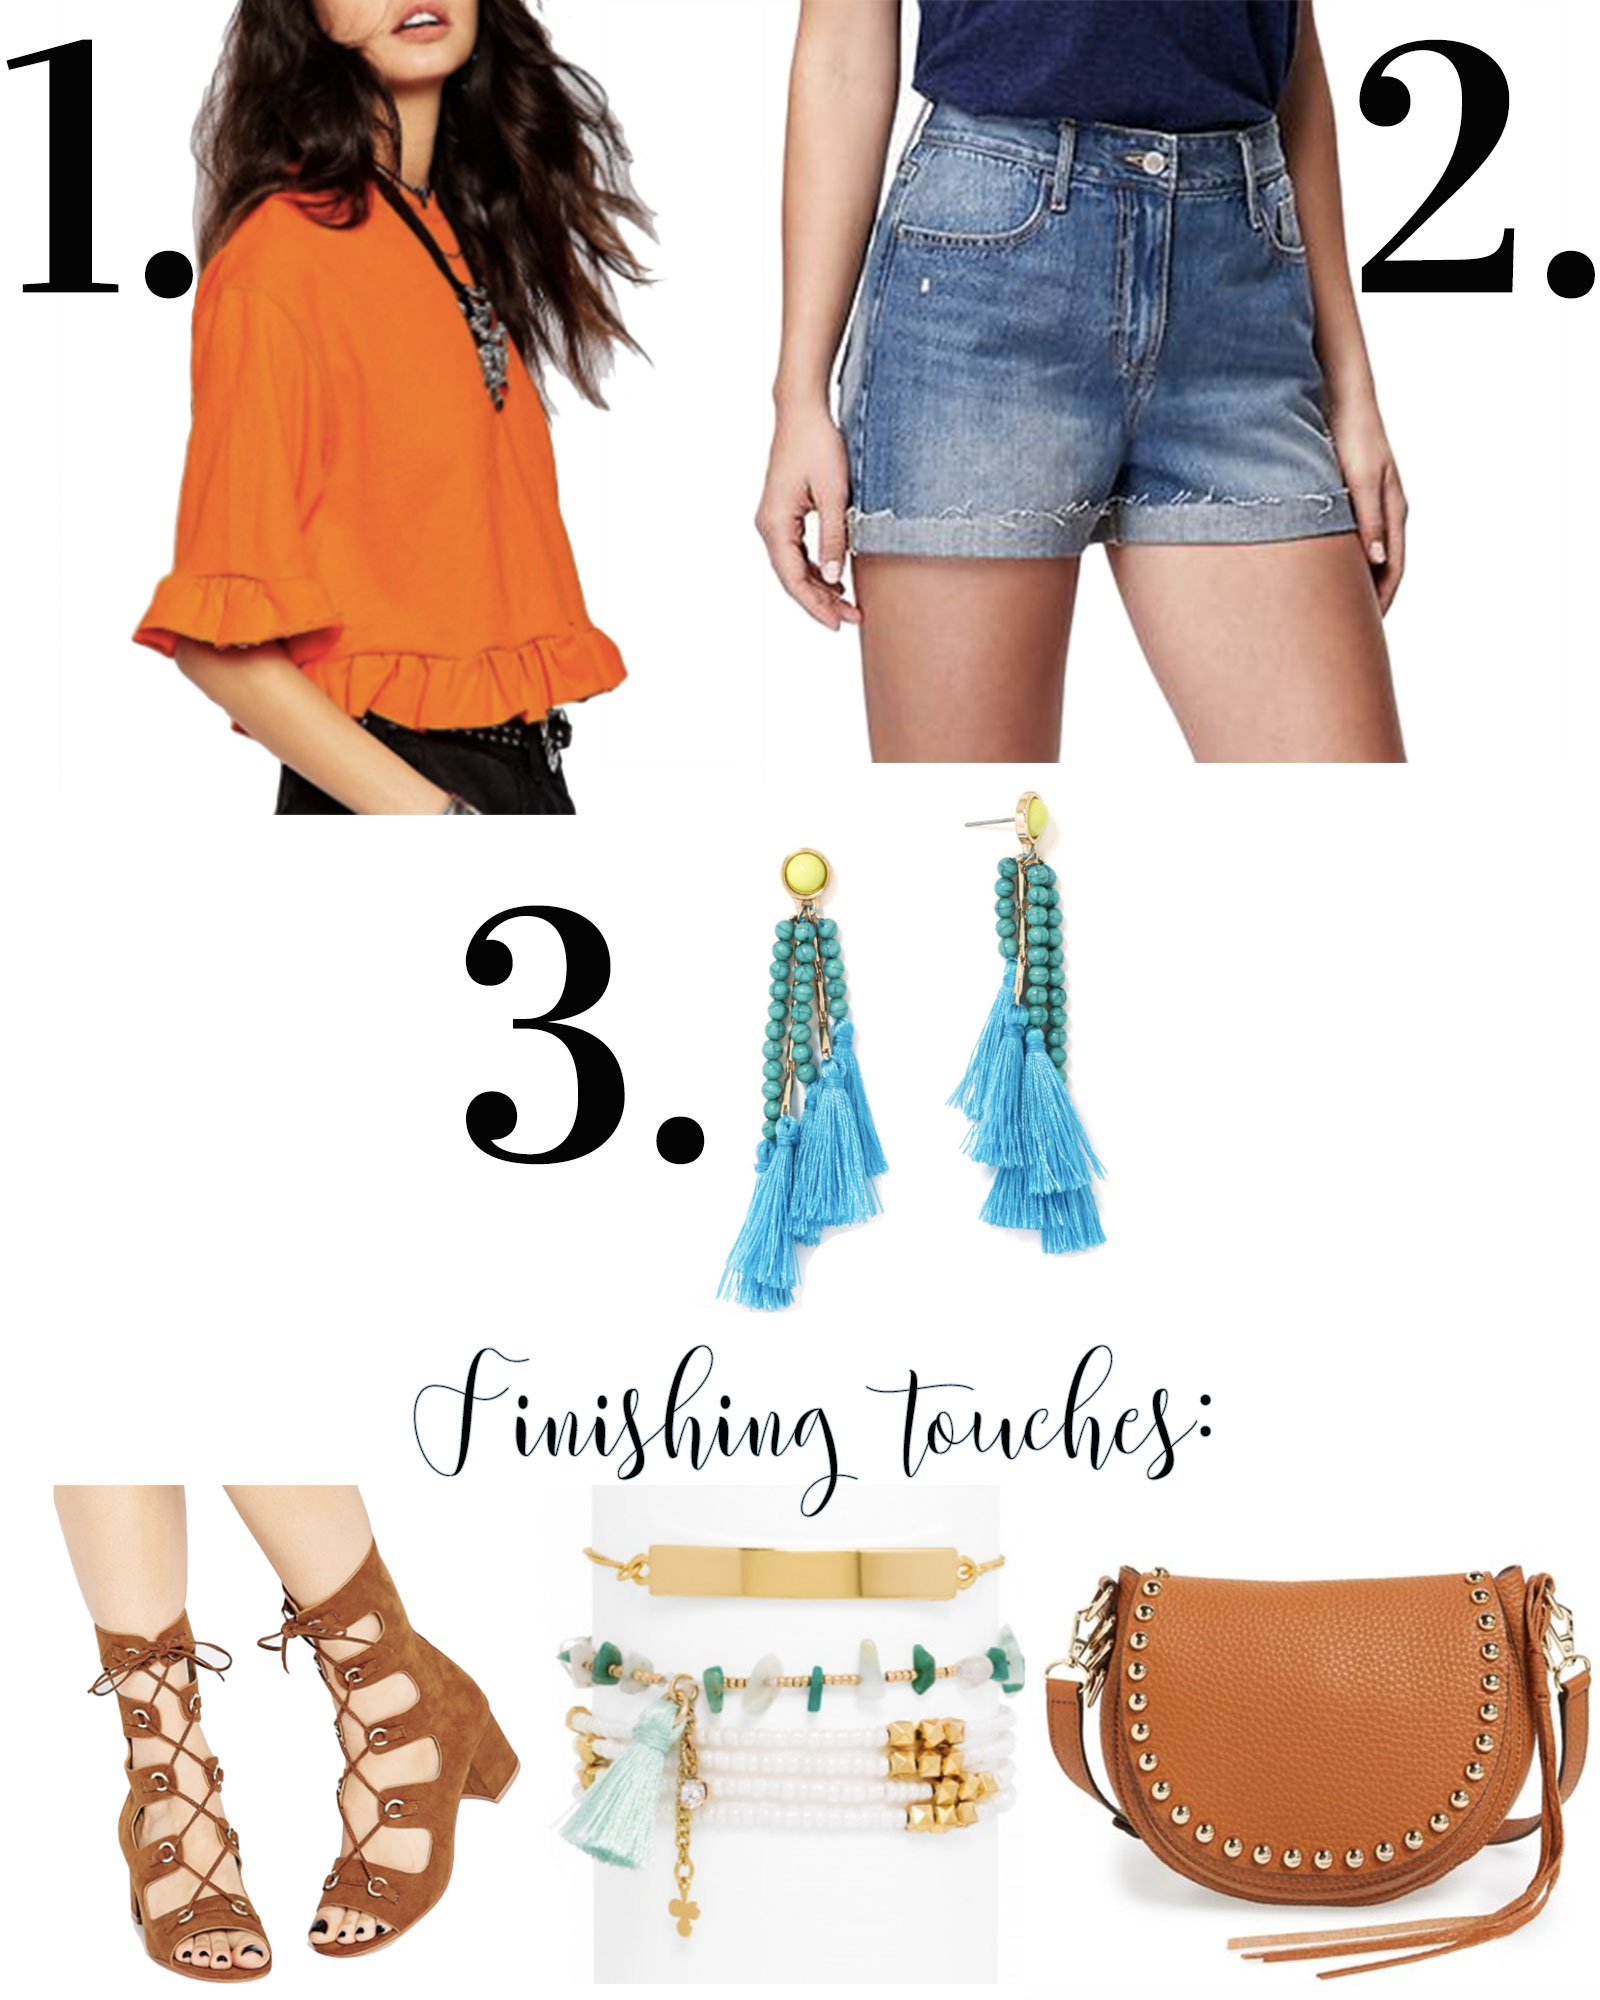 The third piece rule for creating cute summer outfits, tassel earrings, gladiator sandals, high waisted shorts, stacked bracelets, and a Rebecca Minkoff saddle bag.